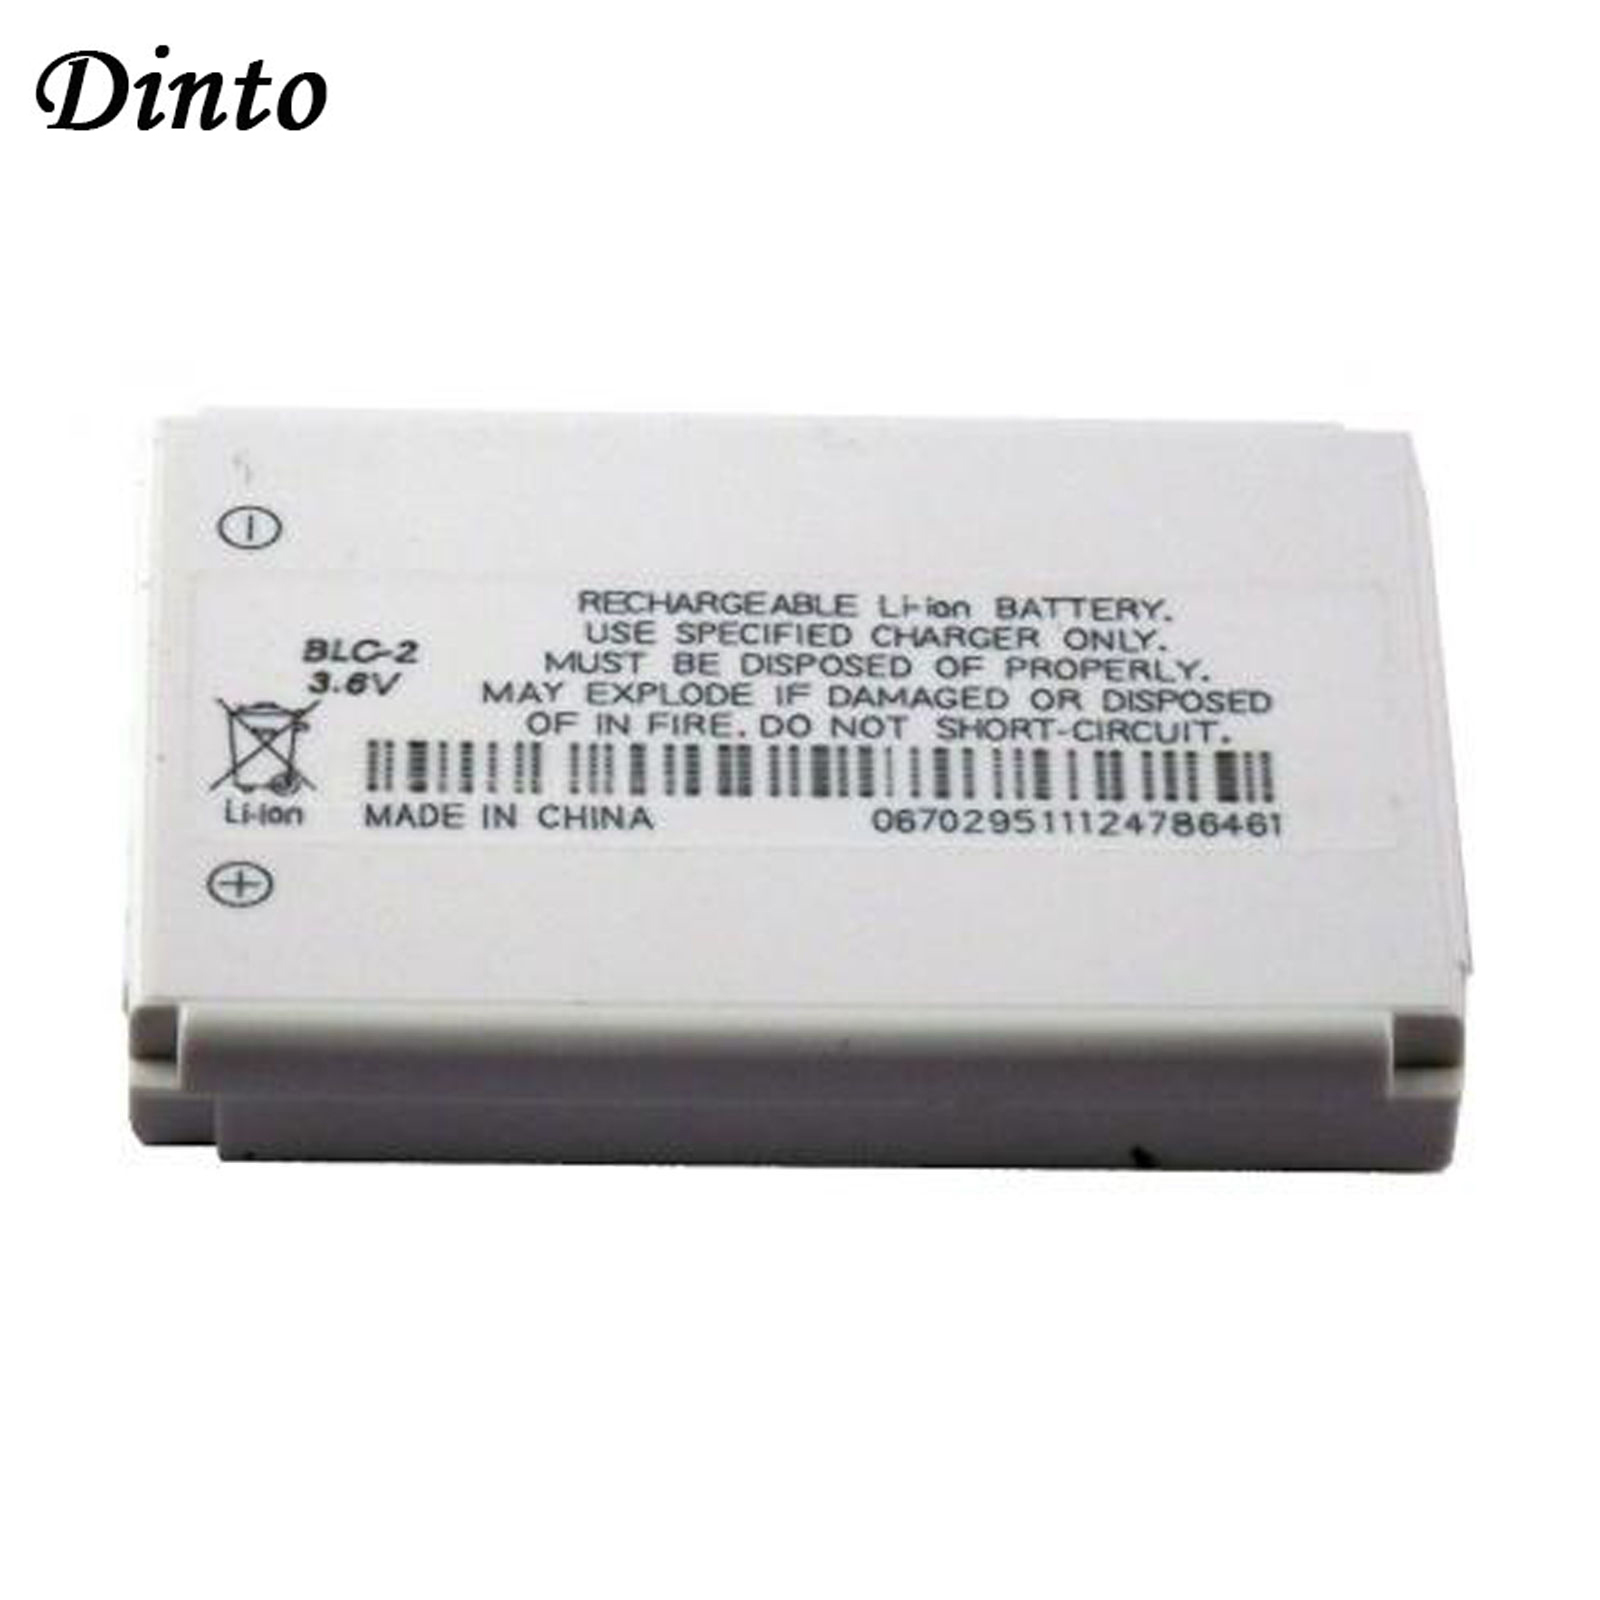 High Quality 3.6V 1200mAh BLC-2 BLC2 BLC 2 Batteries Replacement Mobile Phone Battery For Nokia 3310 3330 3410 3510 3315 3350